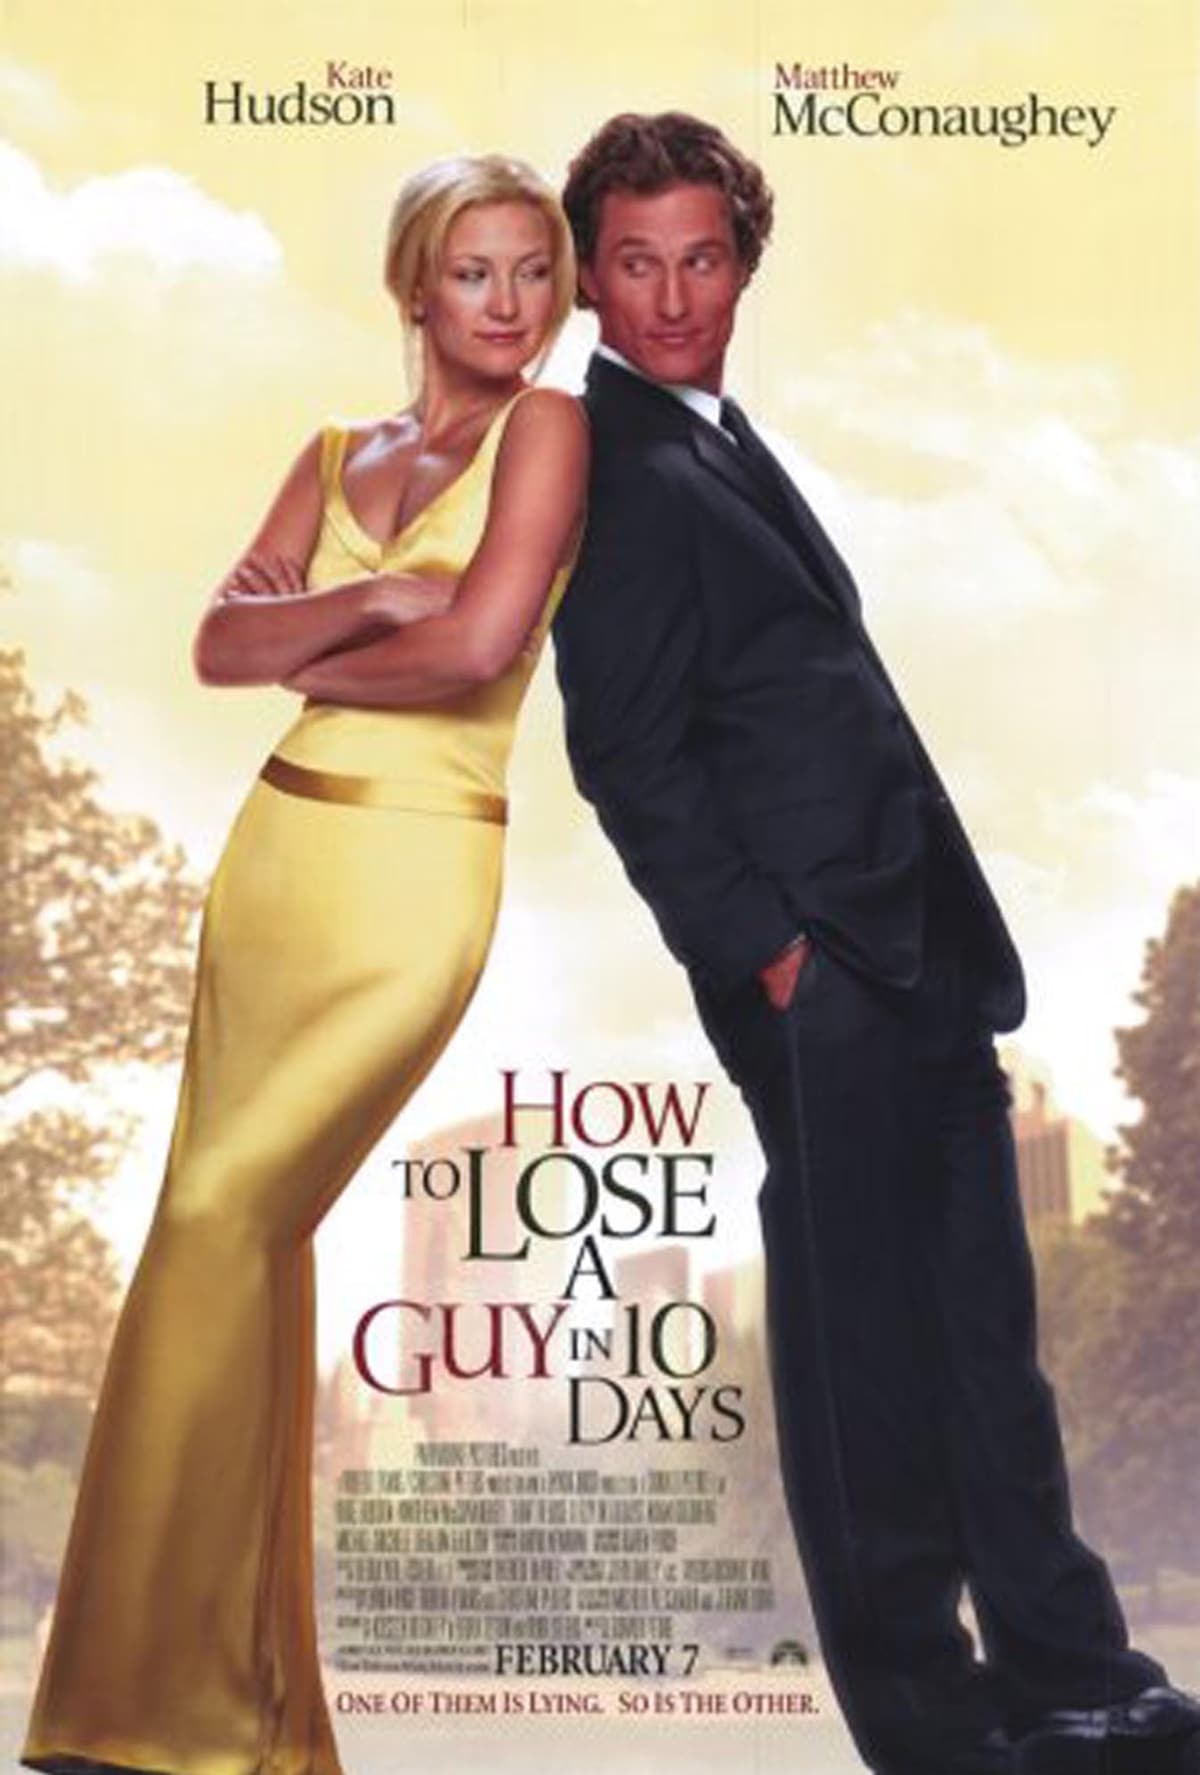 Kate Hudson starred with Matthew McConaughey in the 2003 romantic comedy How to Lose a Guy in 10 Days